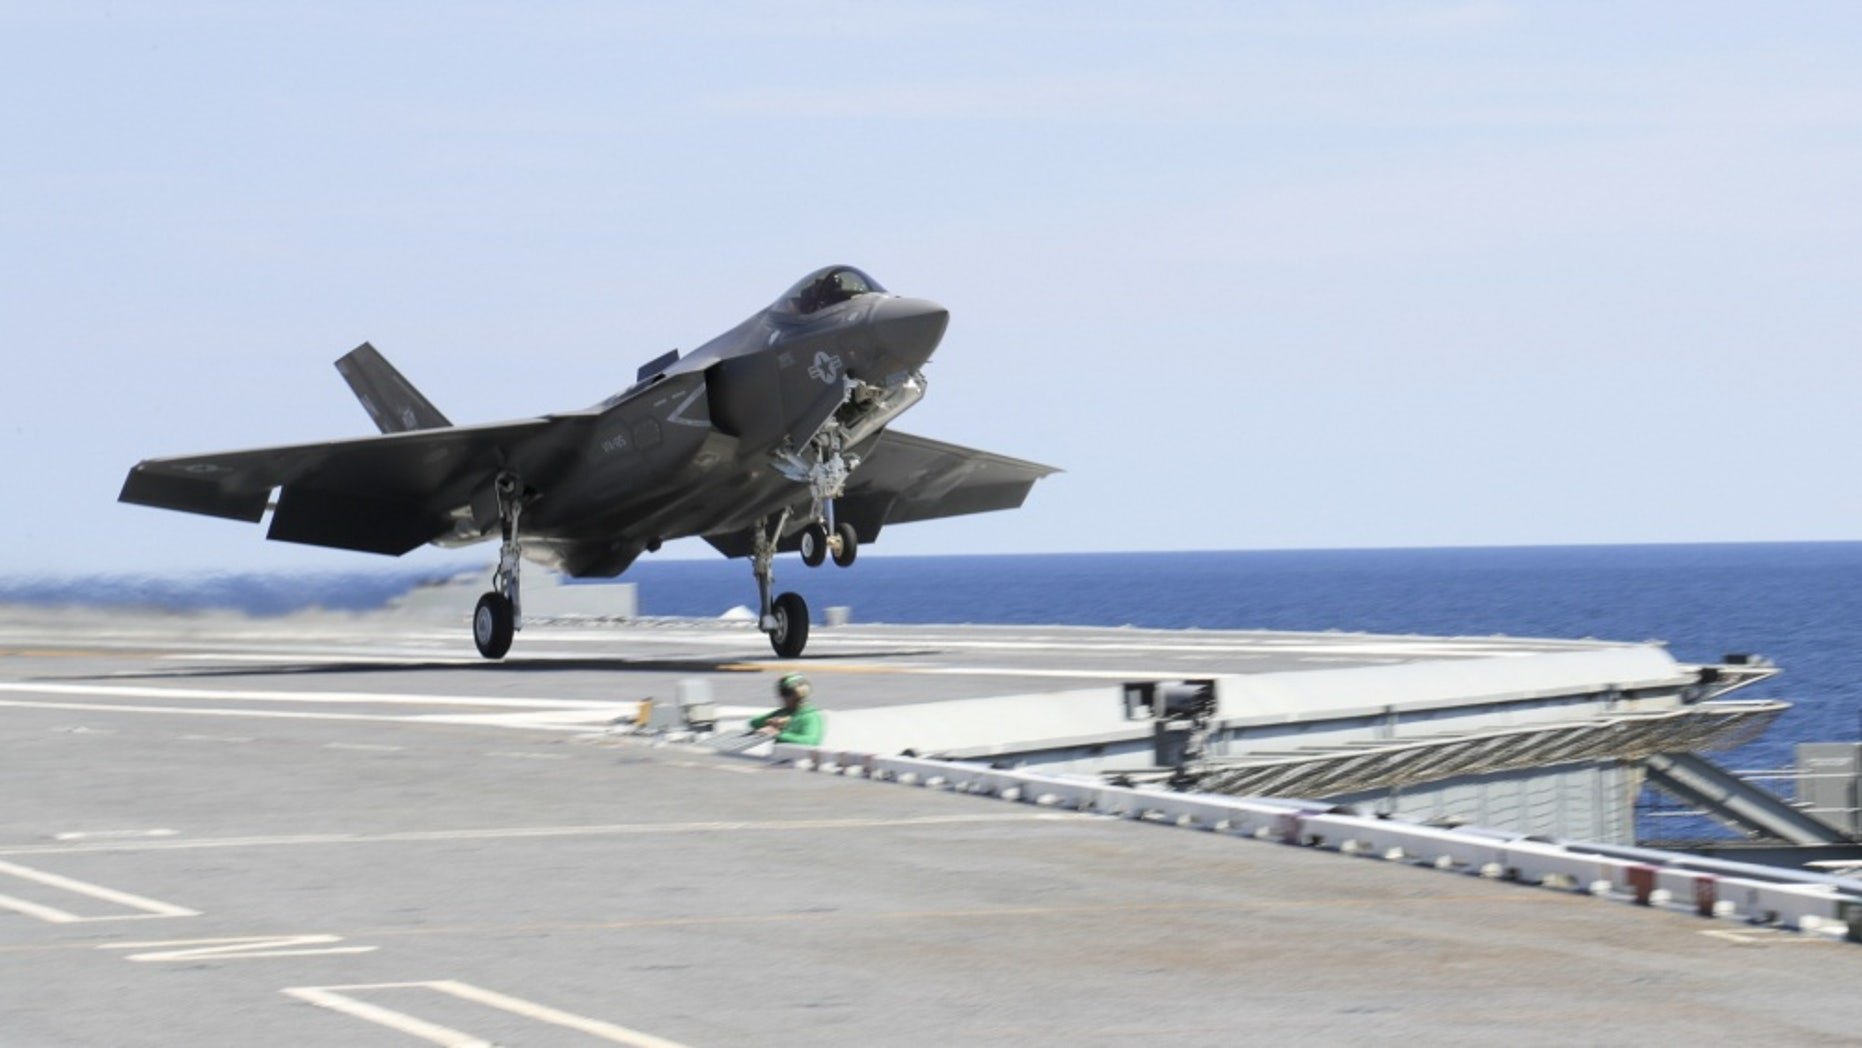 File photo - ATLANTIC OCEAN (Sept. 4, 2017) An F-35C Lightning II assigned to the Grim Reapers of Strike Fighter Squadron (VFA 101) launches off the flight deck of the Nimitz-class aircraft carrier USS Abraham Lincoln (CVN 72).